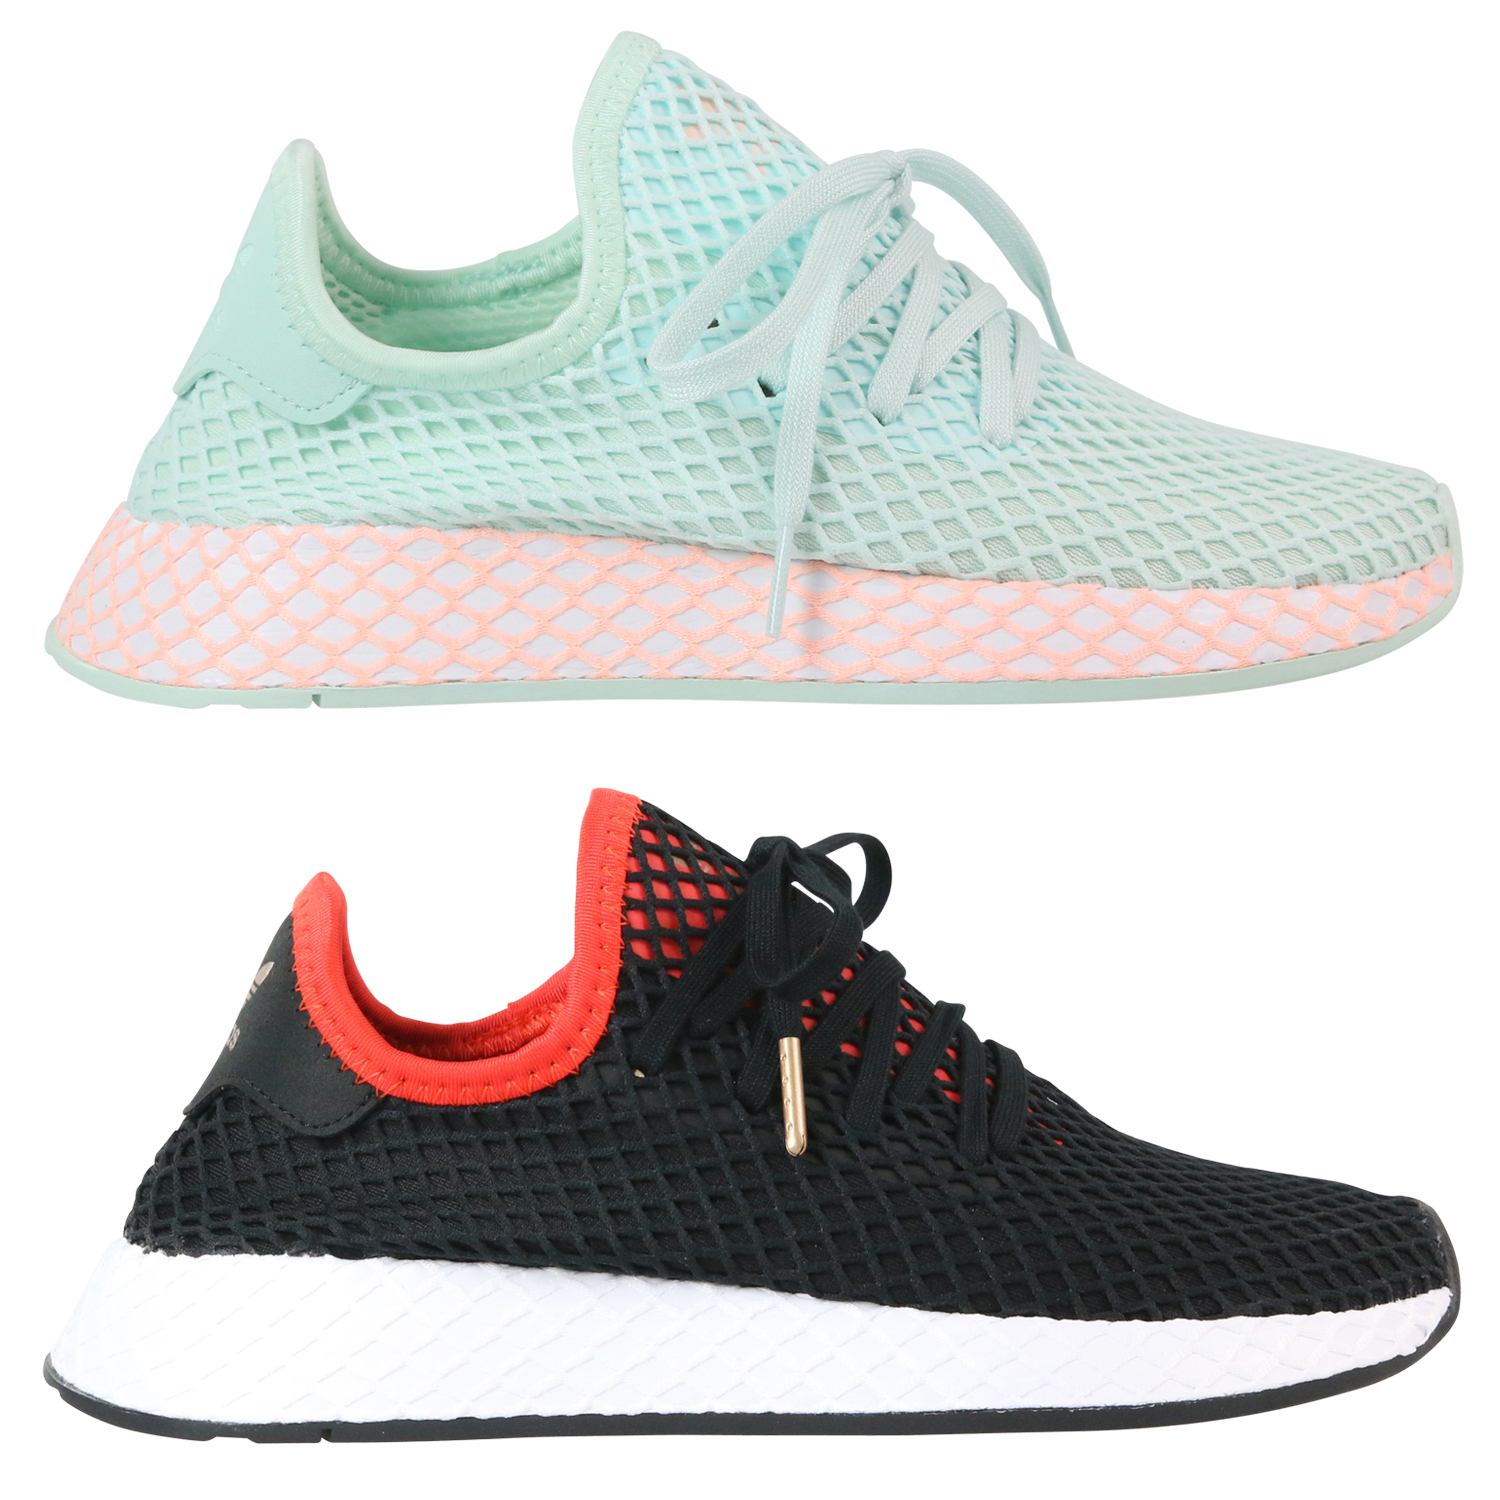 Details zu Adidas Originals Deerupt Runner Junior Schuhe Sneaker Kinder Damen